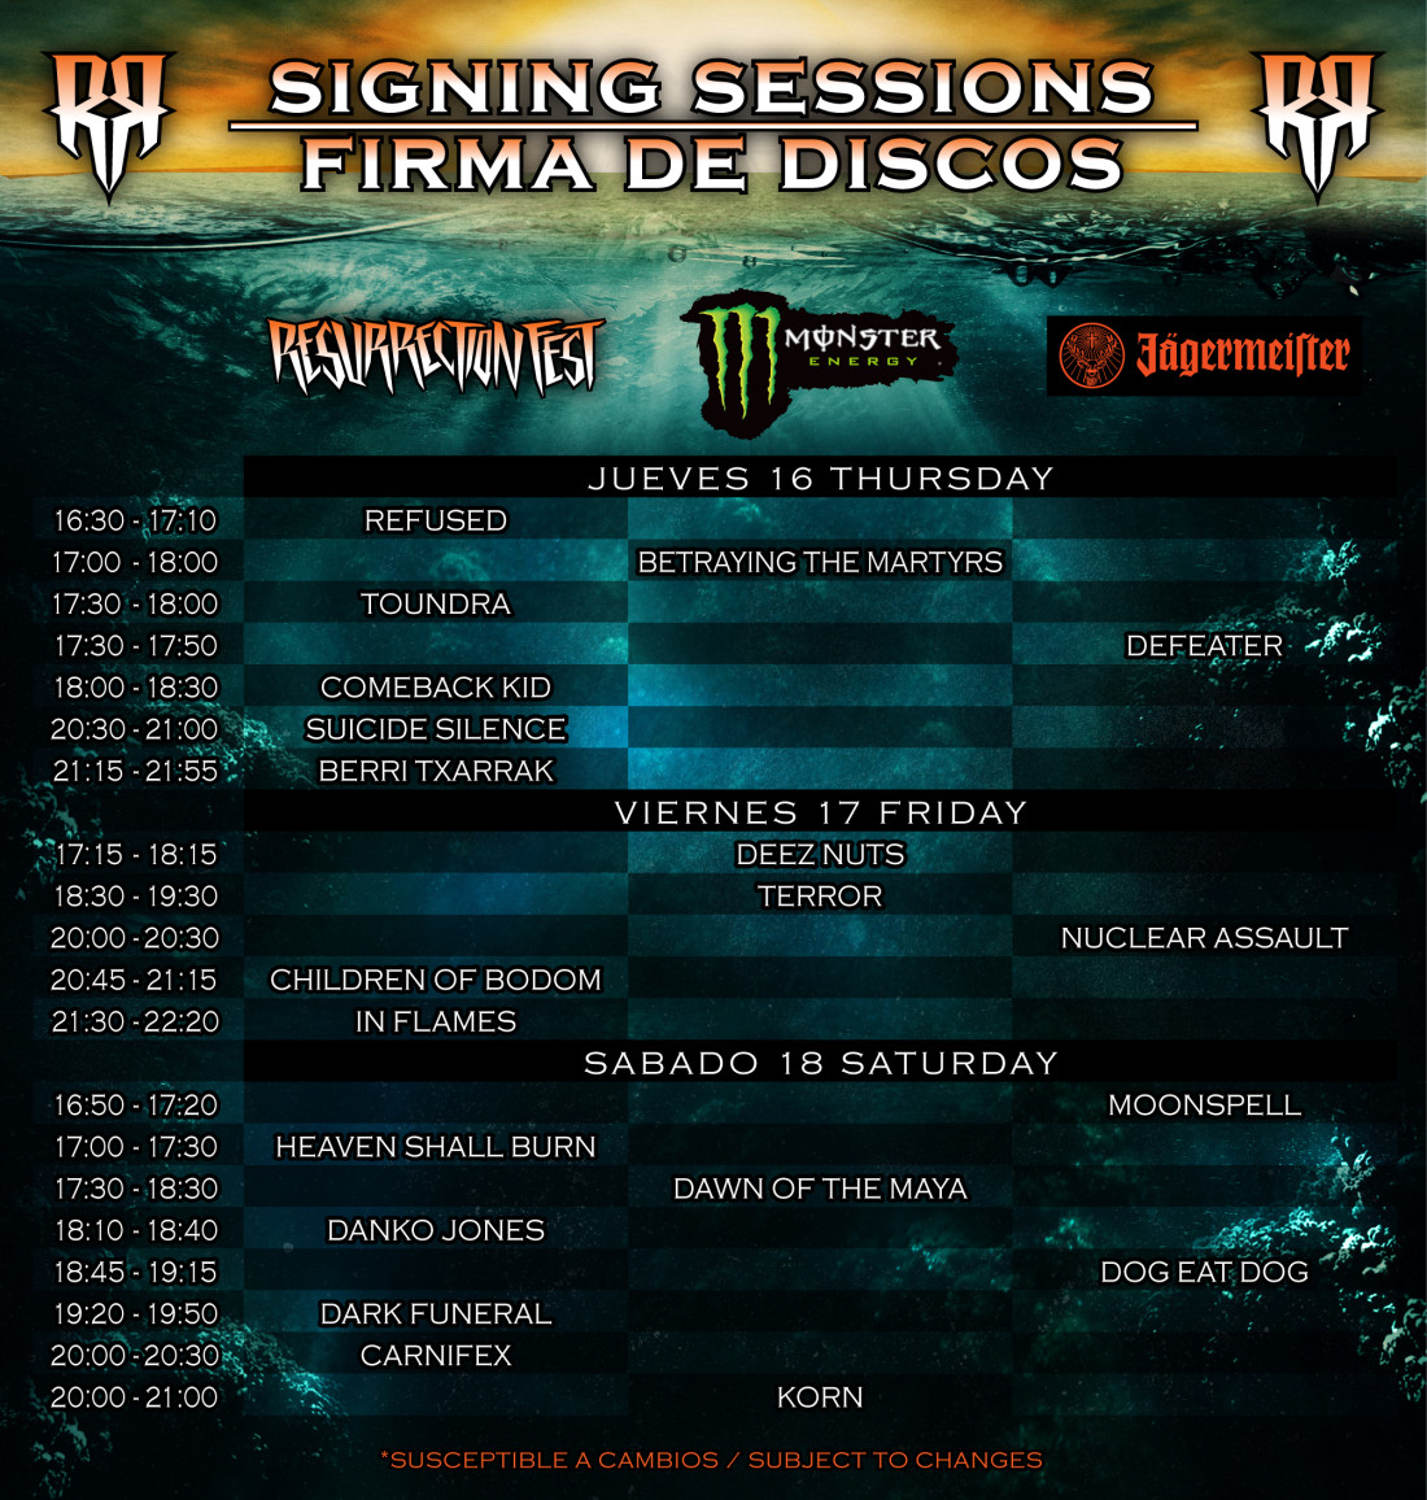 Resurrection-Fest-2015-Signing-sessions-1100x1156